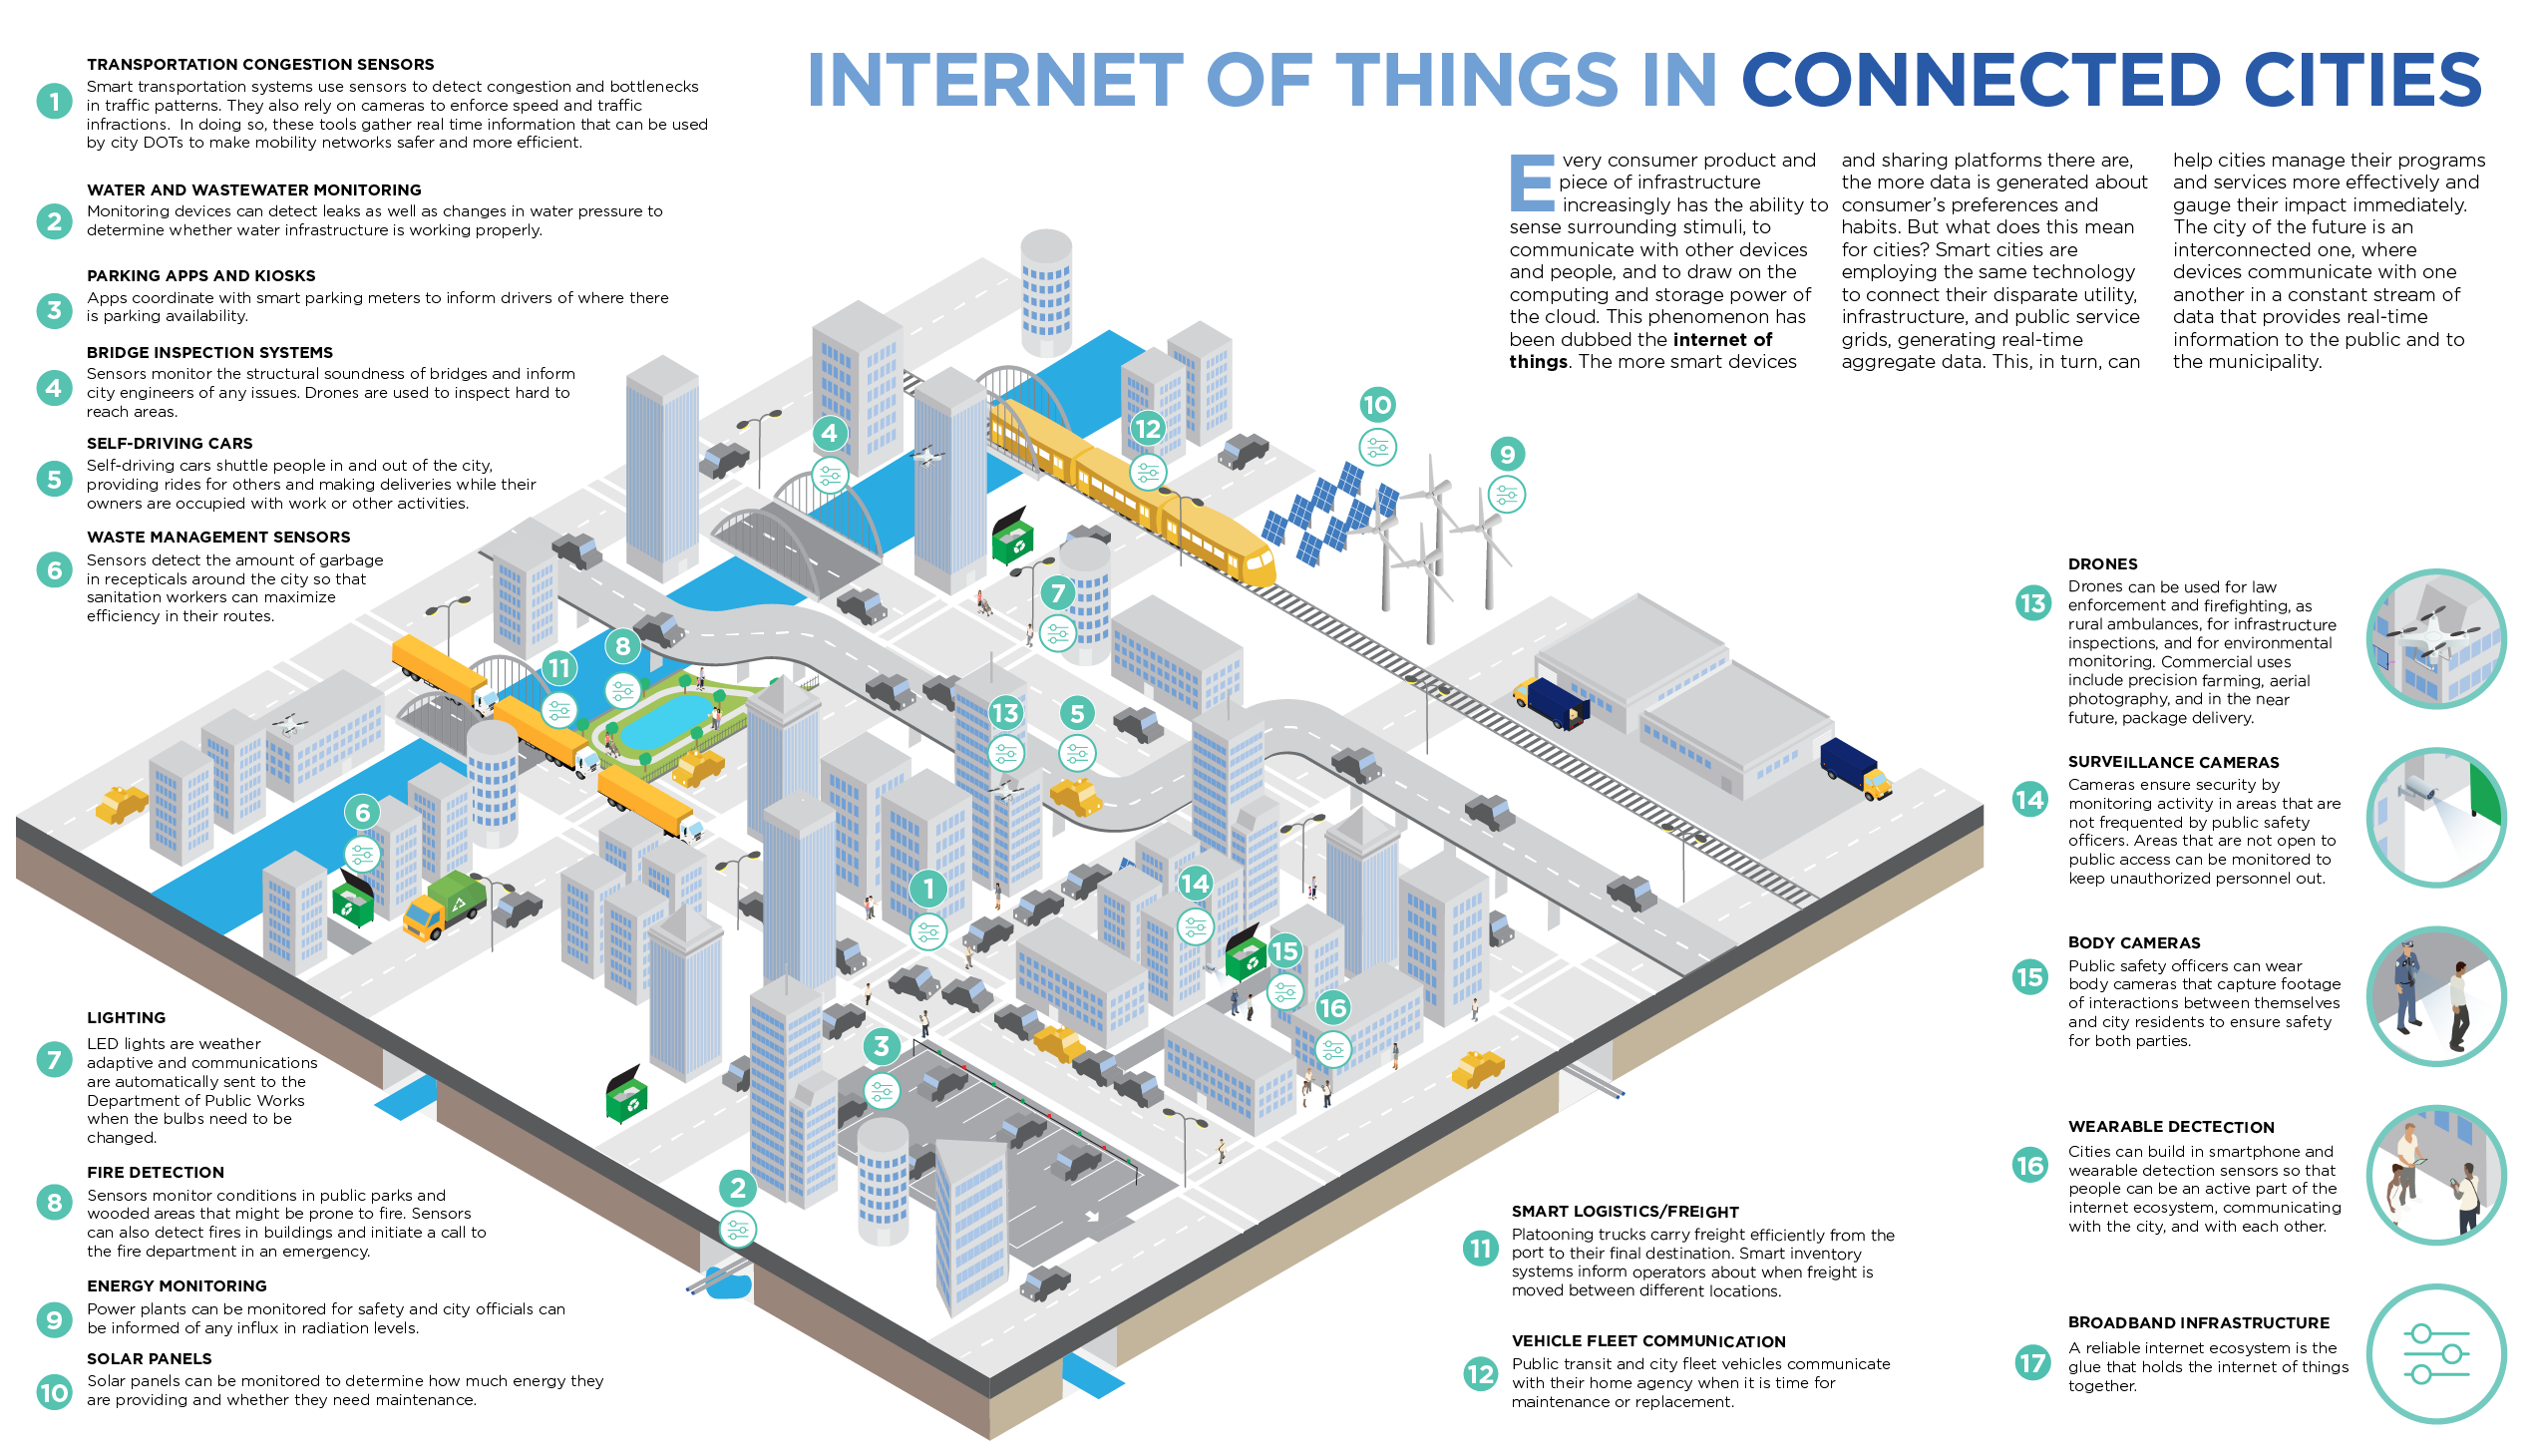 Smart Cities Must Be People Centered Equitable Cities Techcrunch Smart City Smart Building Iot